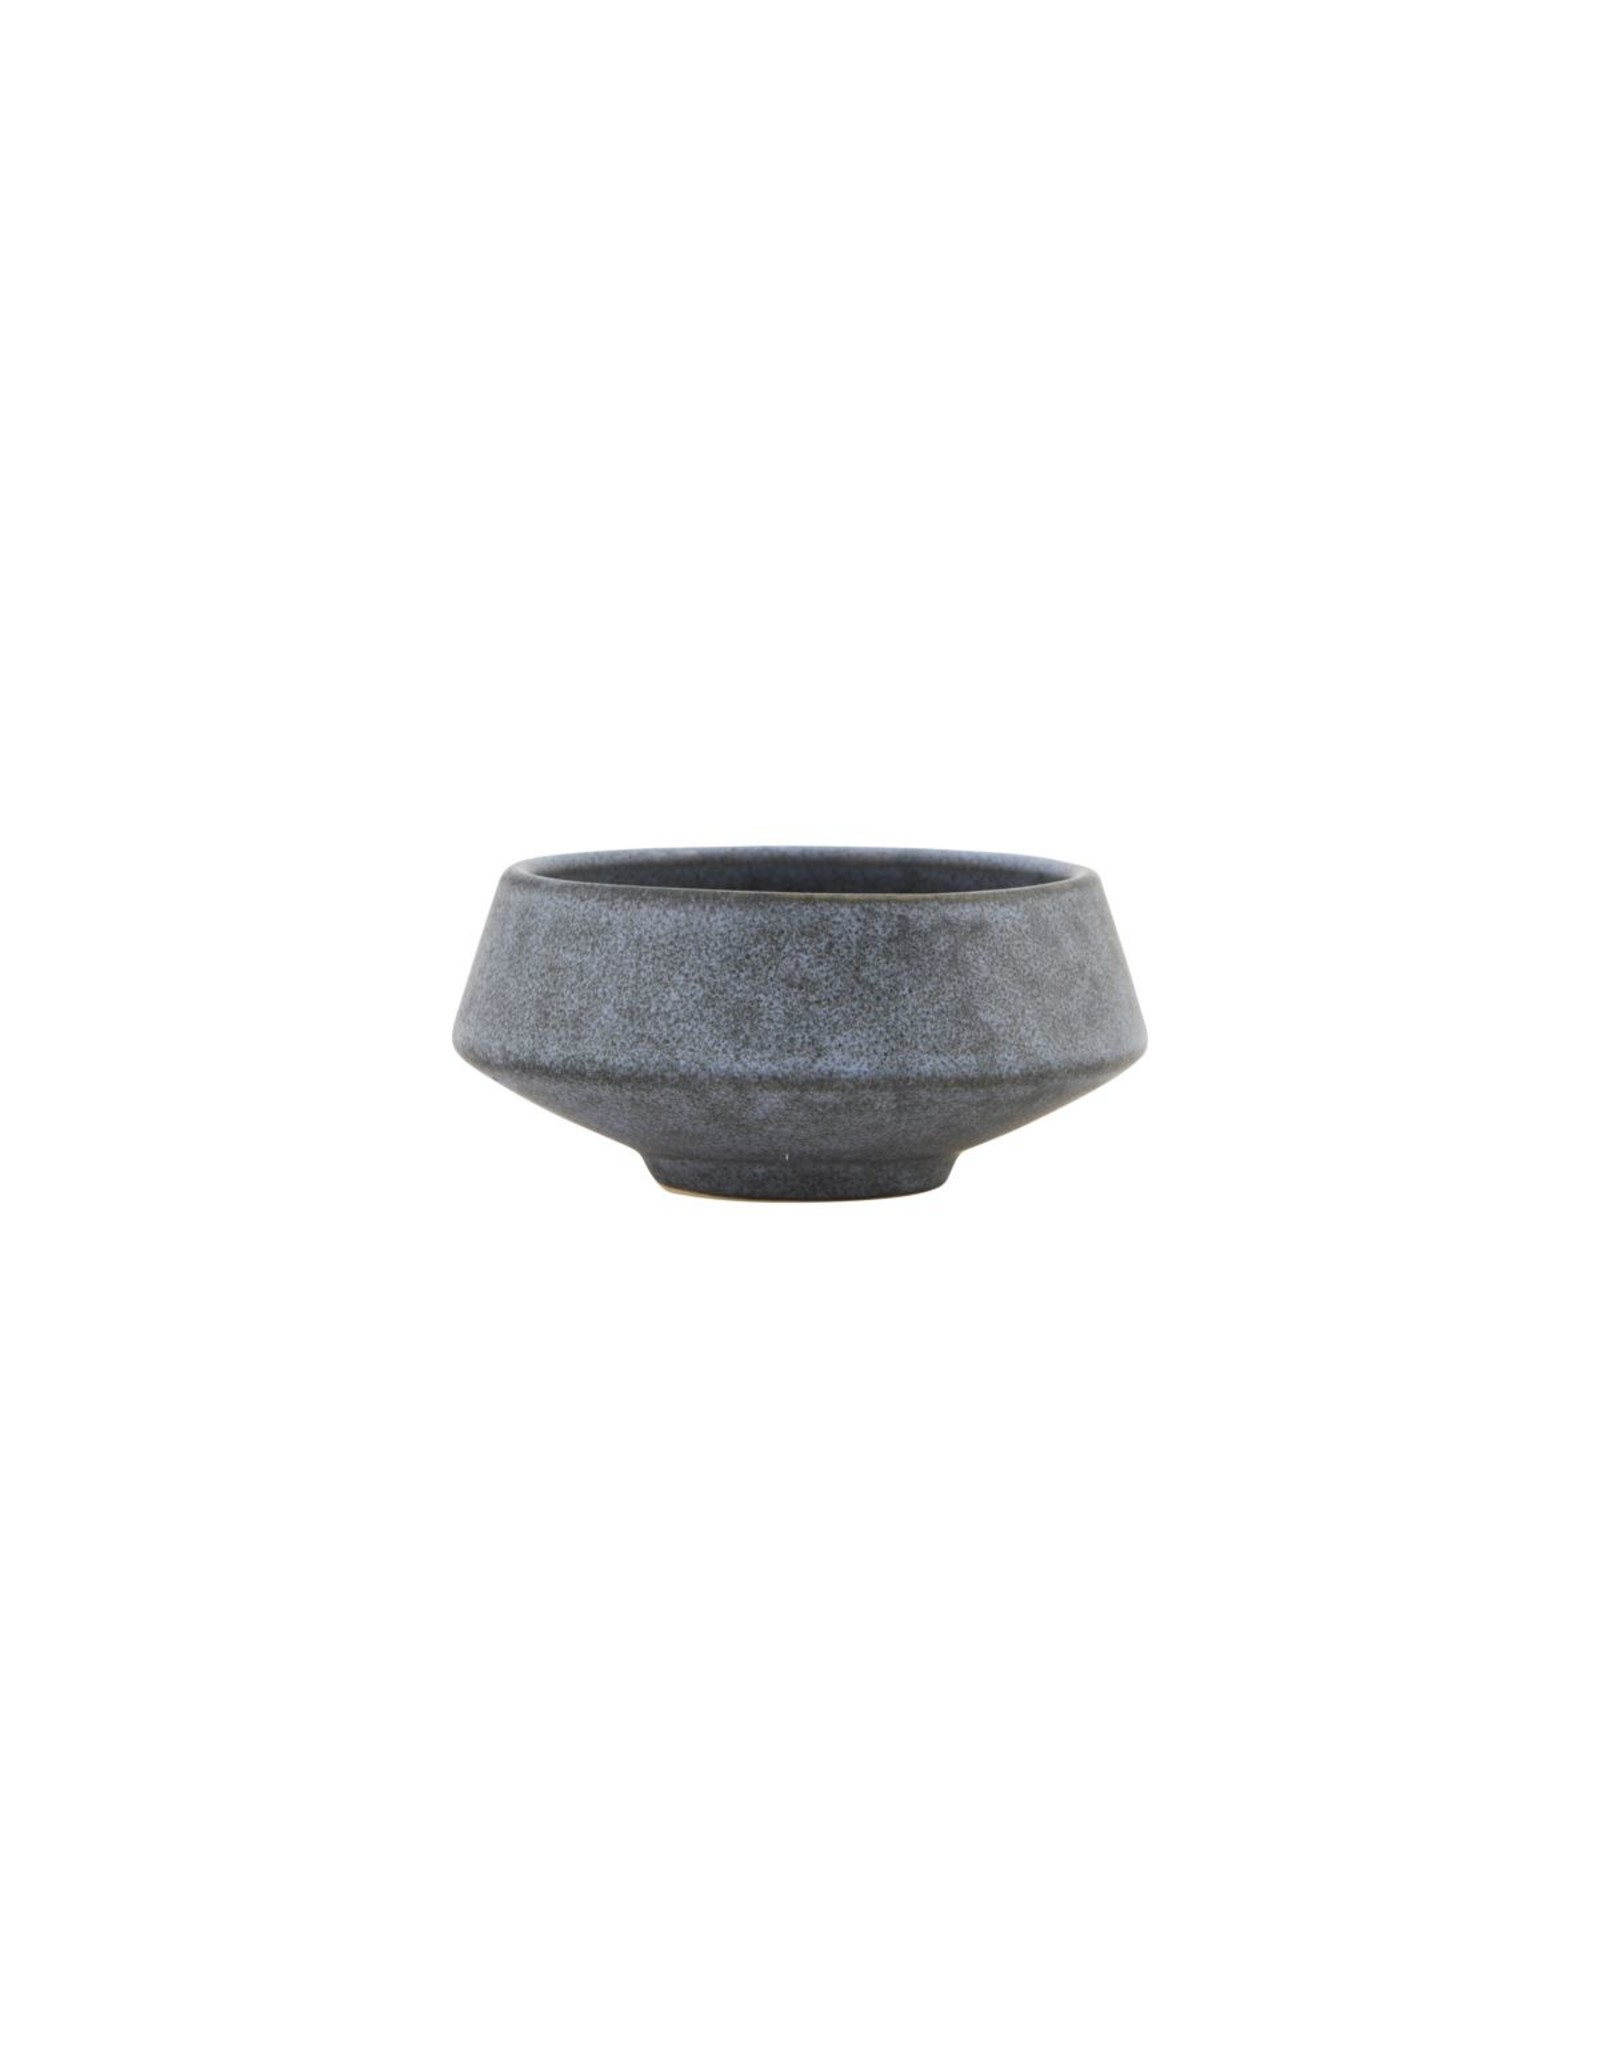 House Doctor House Doctor - Bowl, grey stone S